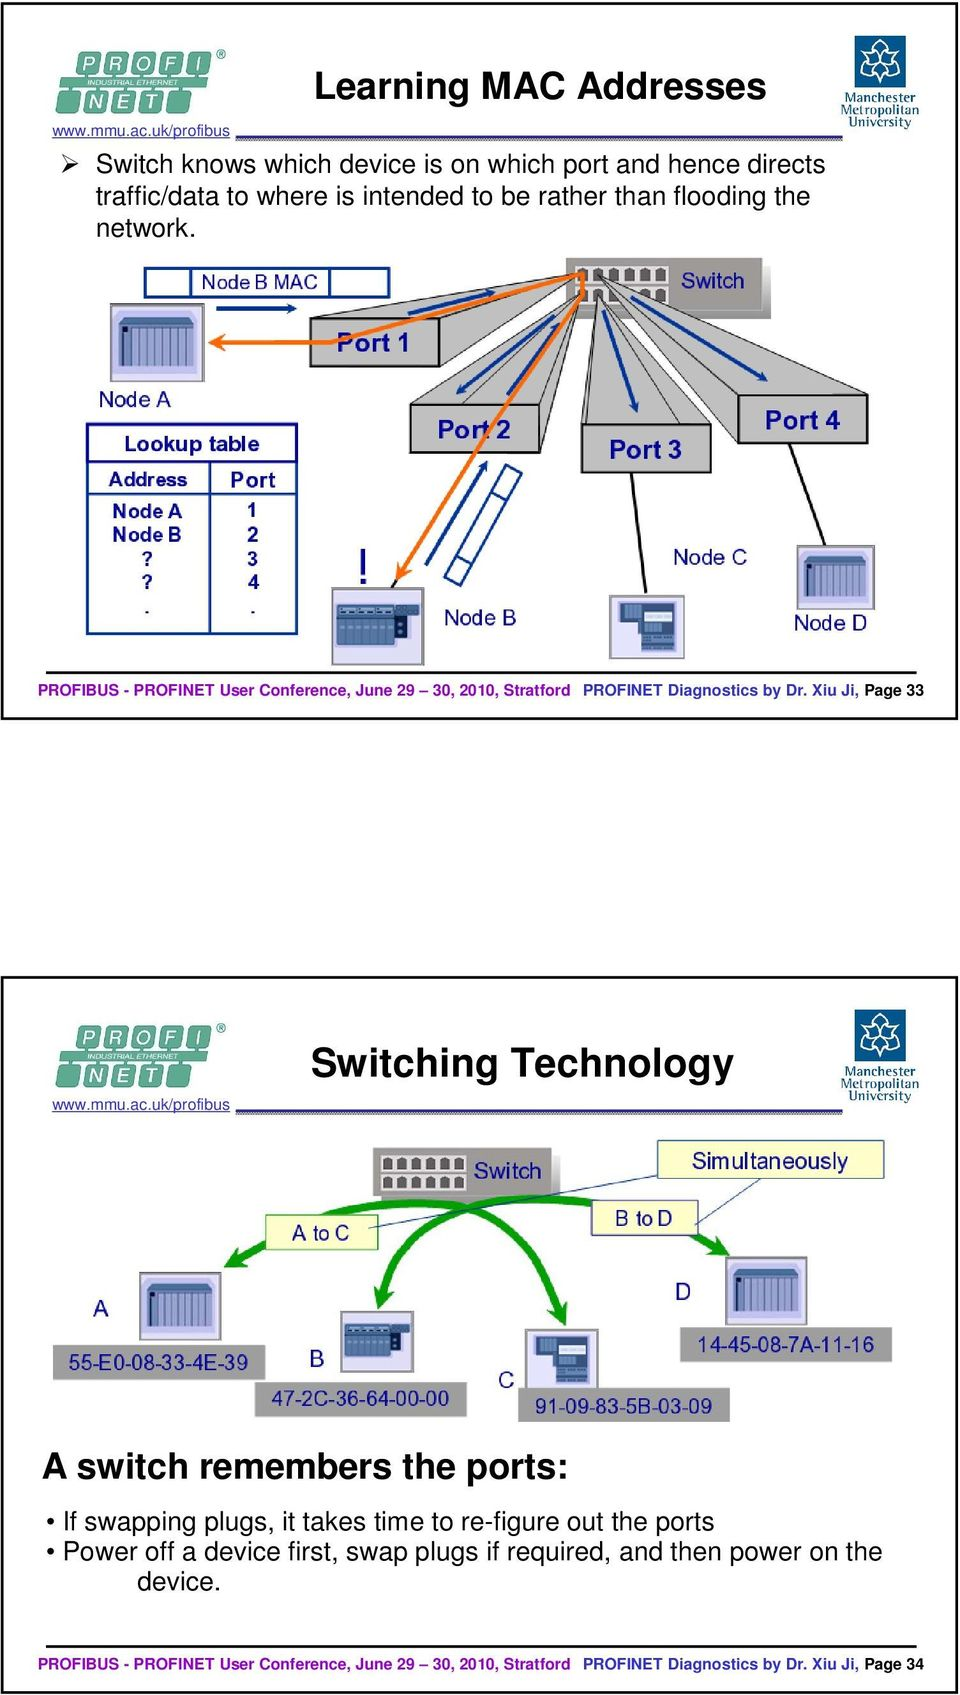 Xiu Ji, Page 33 Switching Technology A switch remembers the ports: If swapping plugs, it takes time to